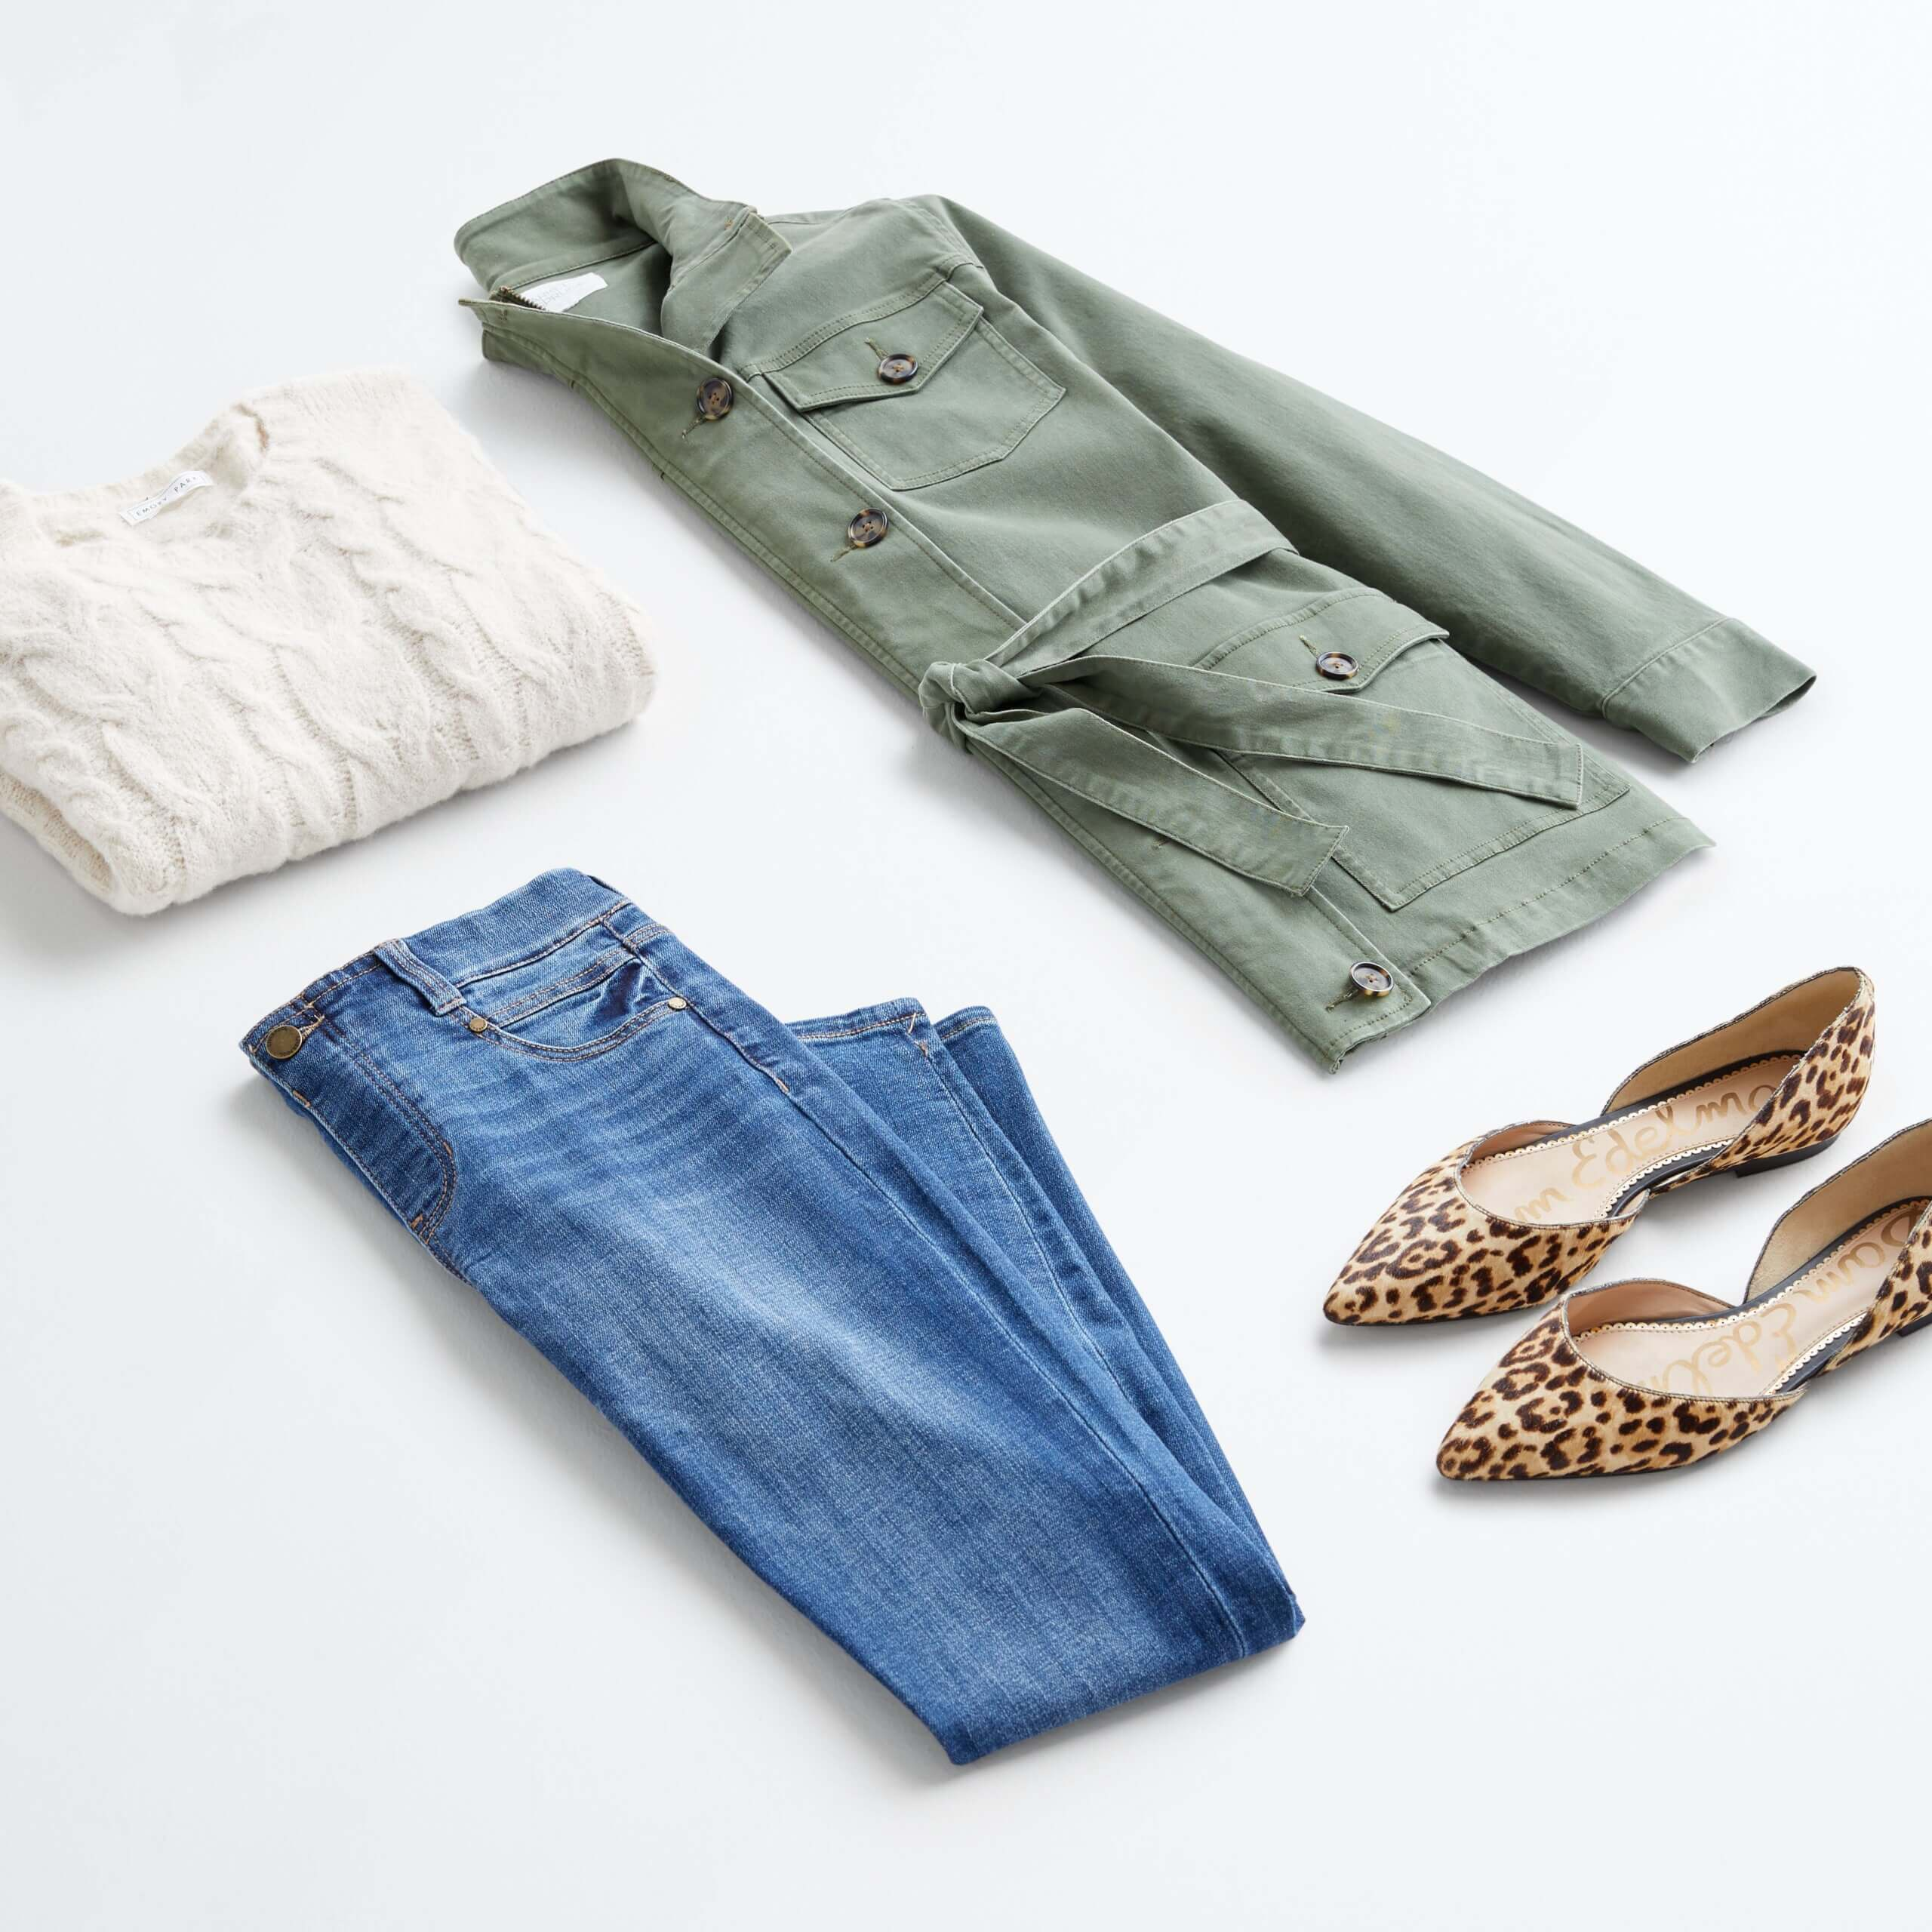 Stitch Fix Women's outfit laydown featuring cream cable knit pullover, green cargo jacket, blue jeans and cheetah print flats.